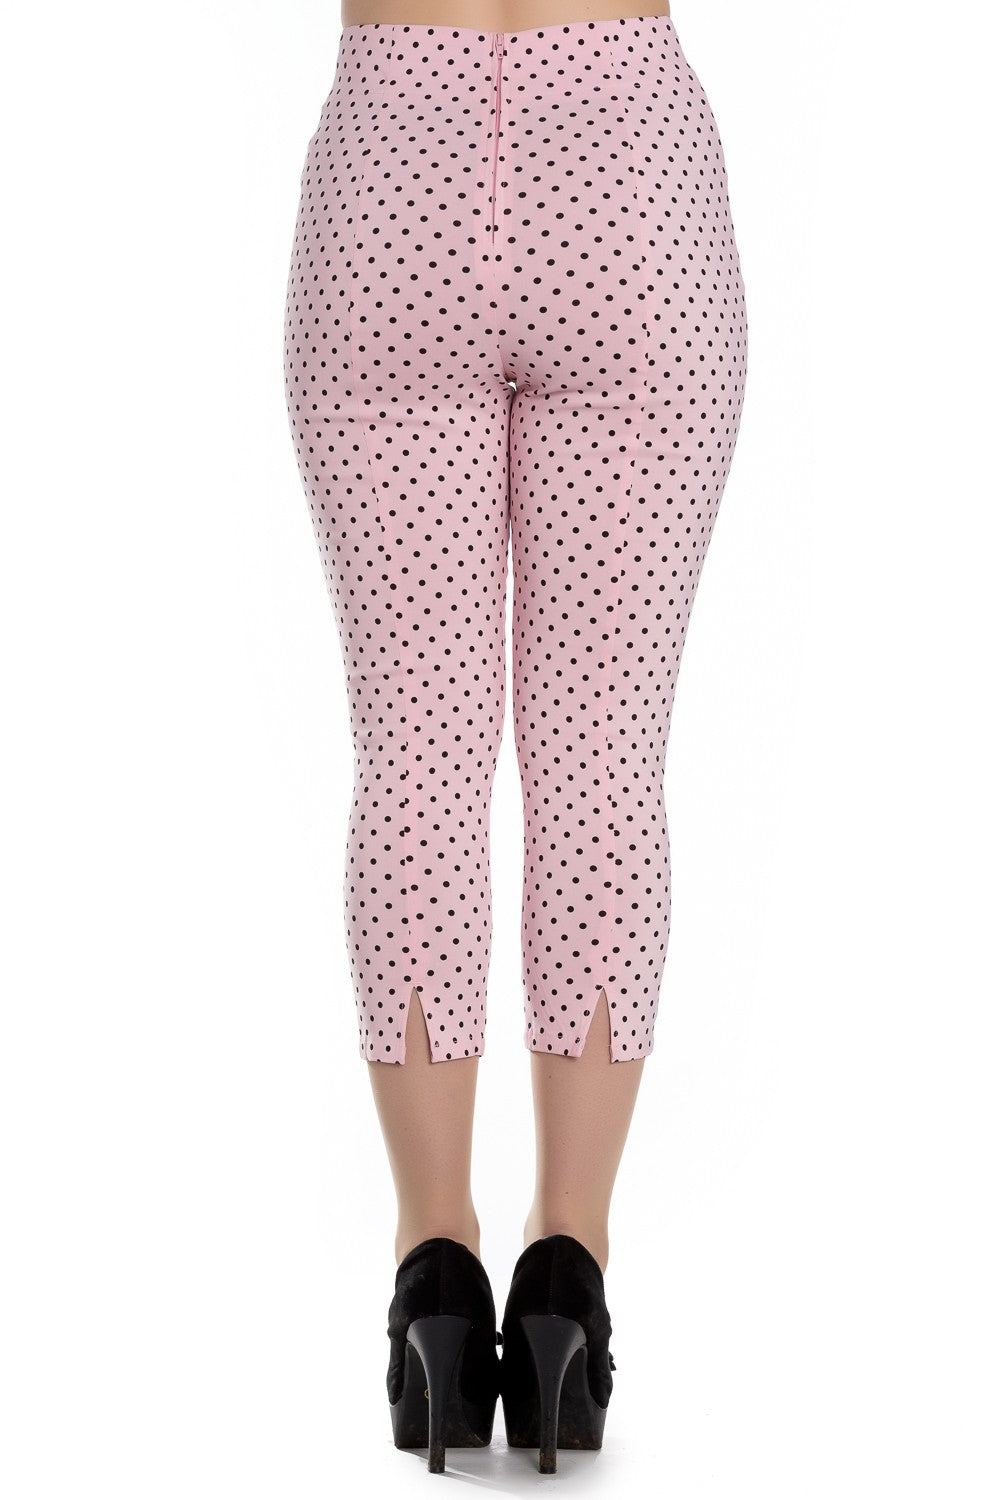 21fc213f058 High Waist Retro Capris in Pink   Black Polka Dot by Hell bunny ...